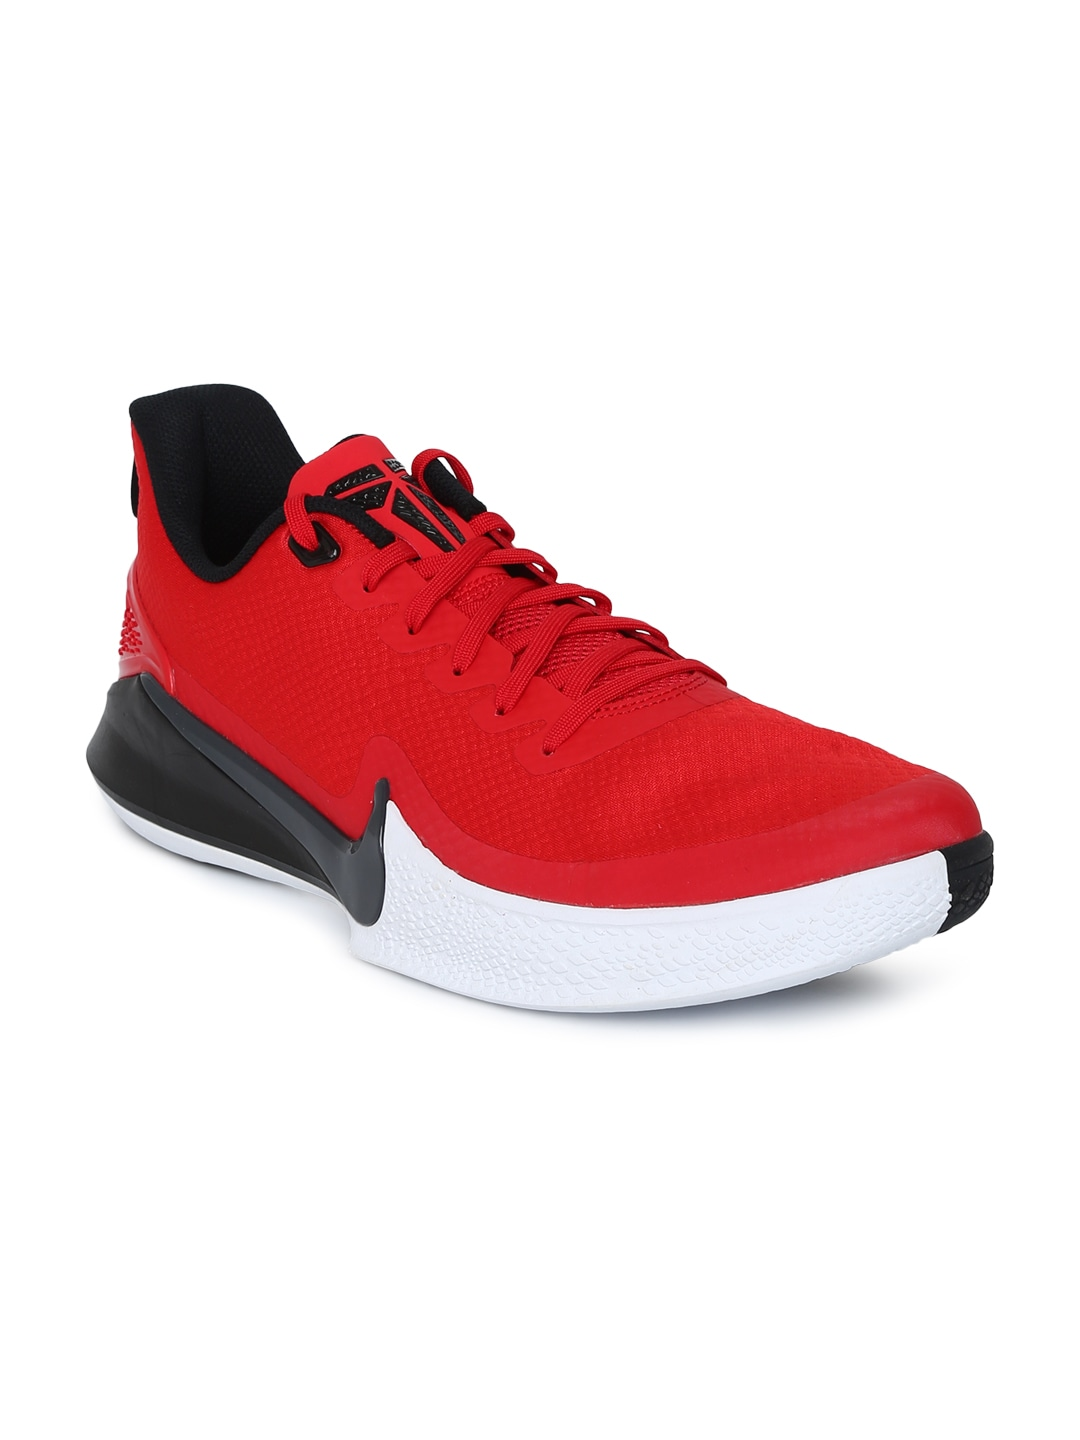 2328635e8959 Nike Red Basketball Shoes for Men online in India at Best price on ...